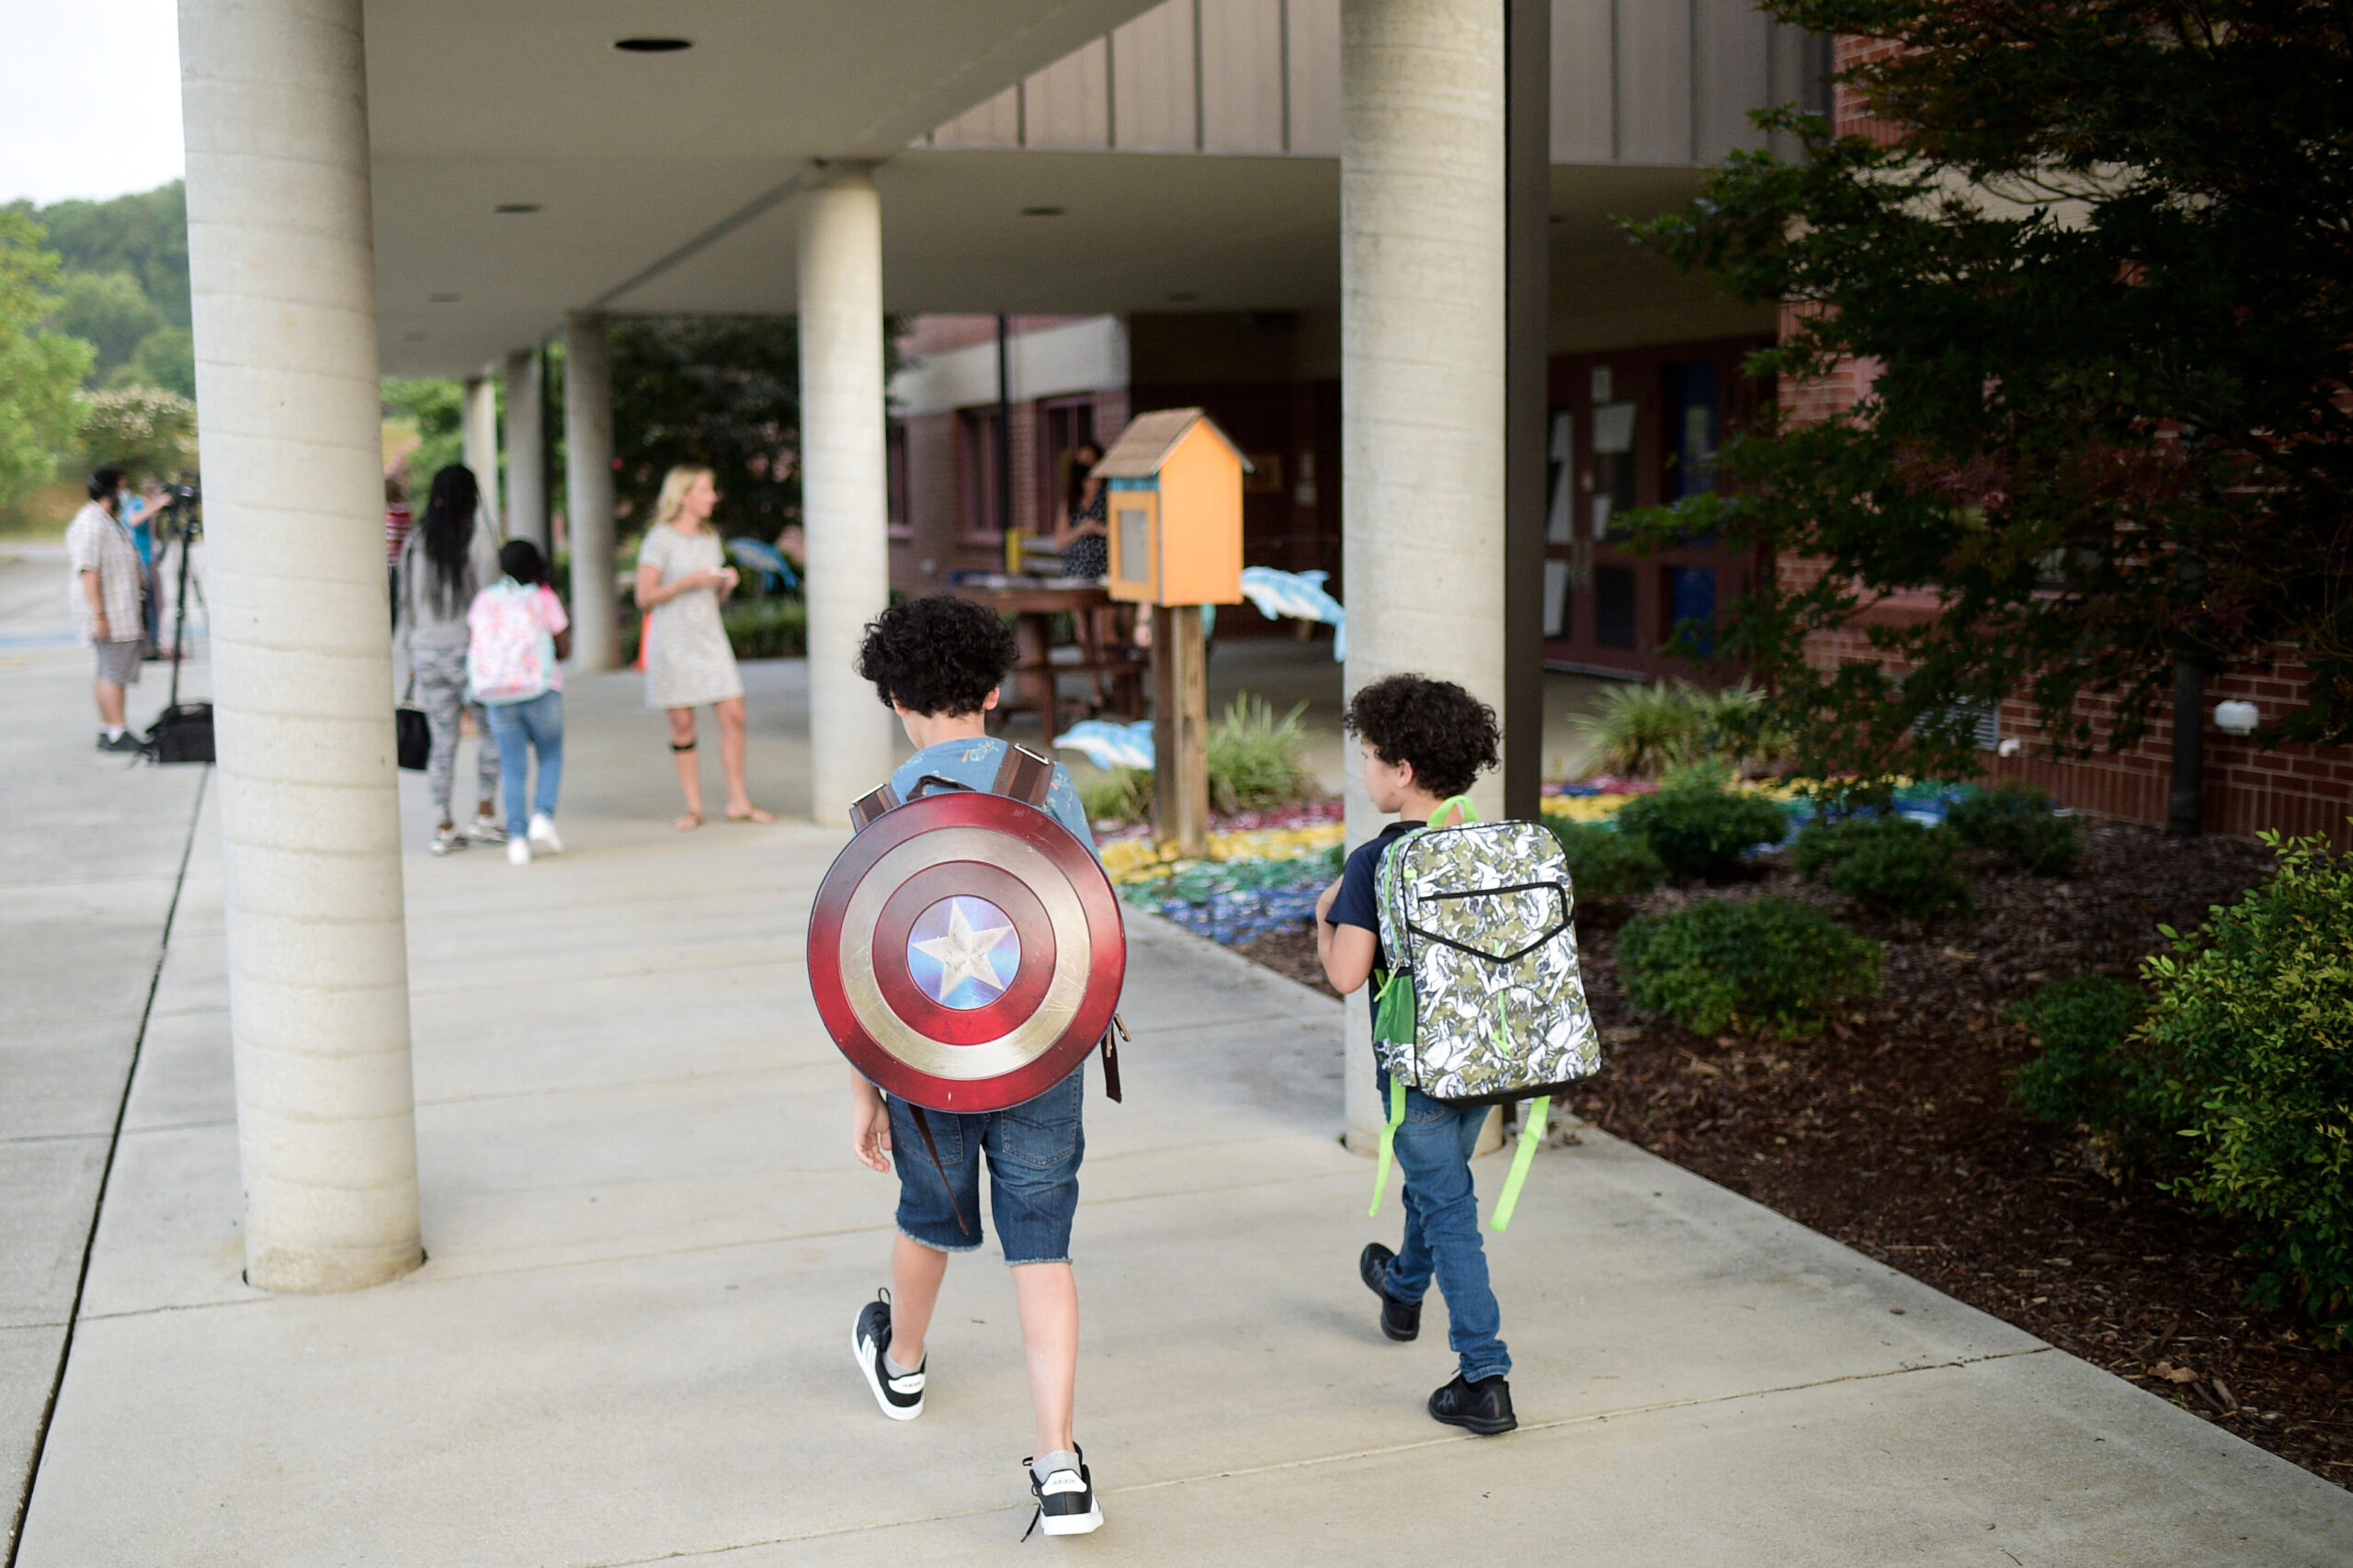 <i>Calvin Mattheis/News Sentinel/USA Today Network</i><br/>Students arrive on the first day of Knox County Schools at Dogwood Elementary School in Knoxville on August 9